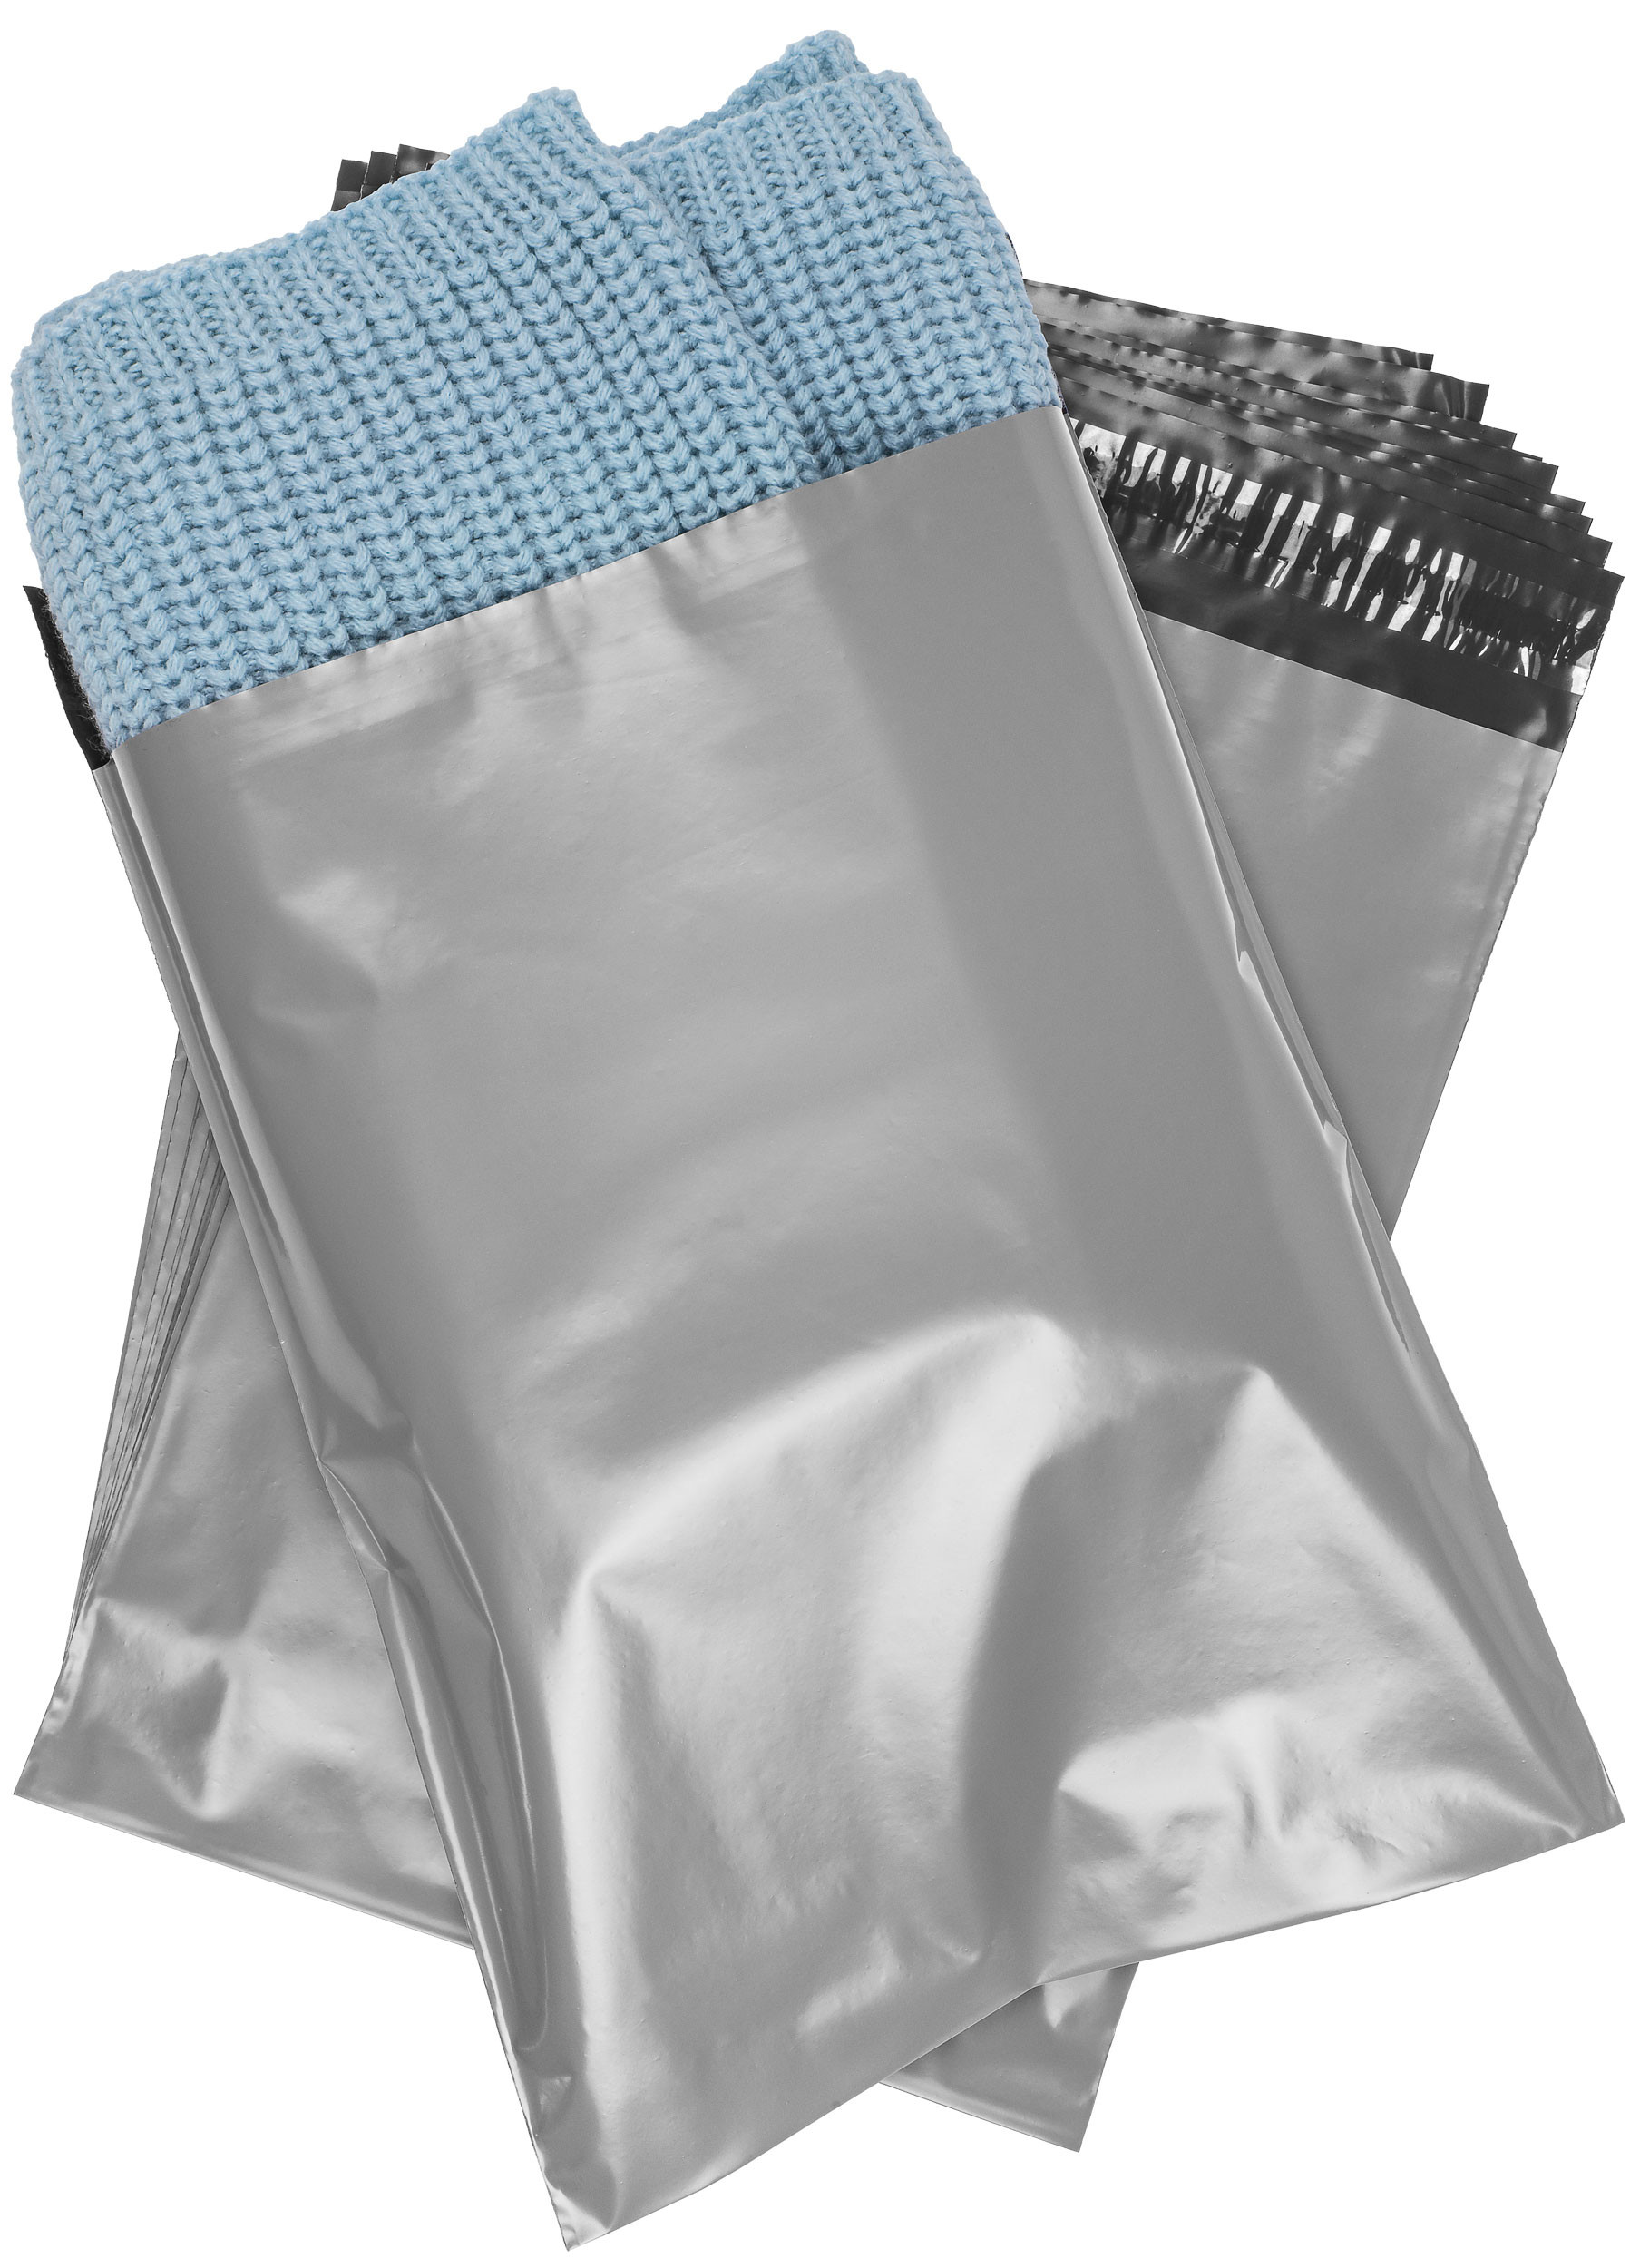 10x13 Poly Mailers Envelopes Self Sealing Bags - 2.4 Mil